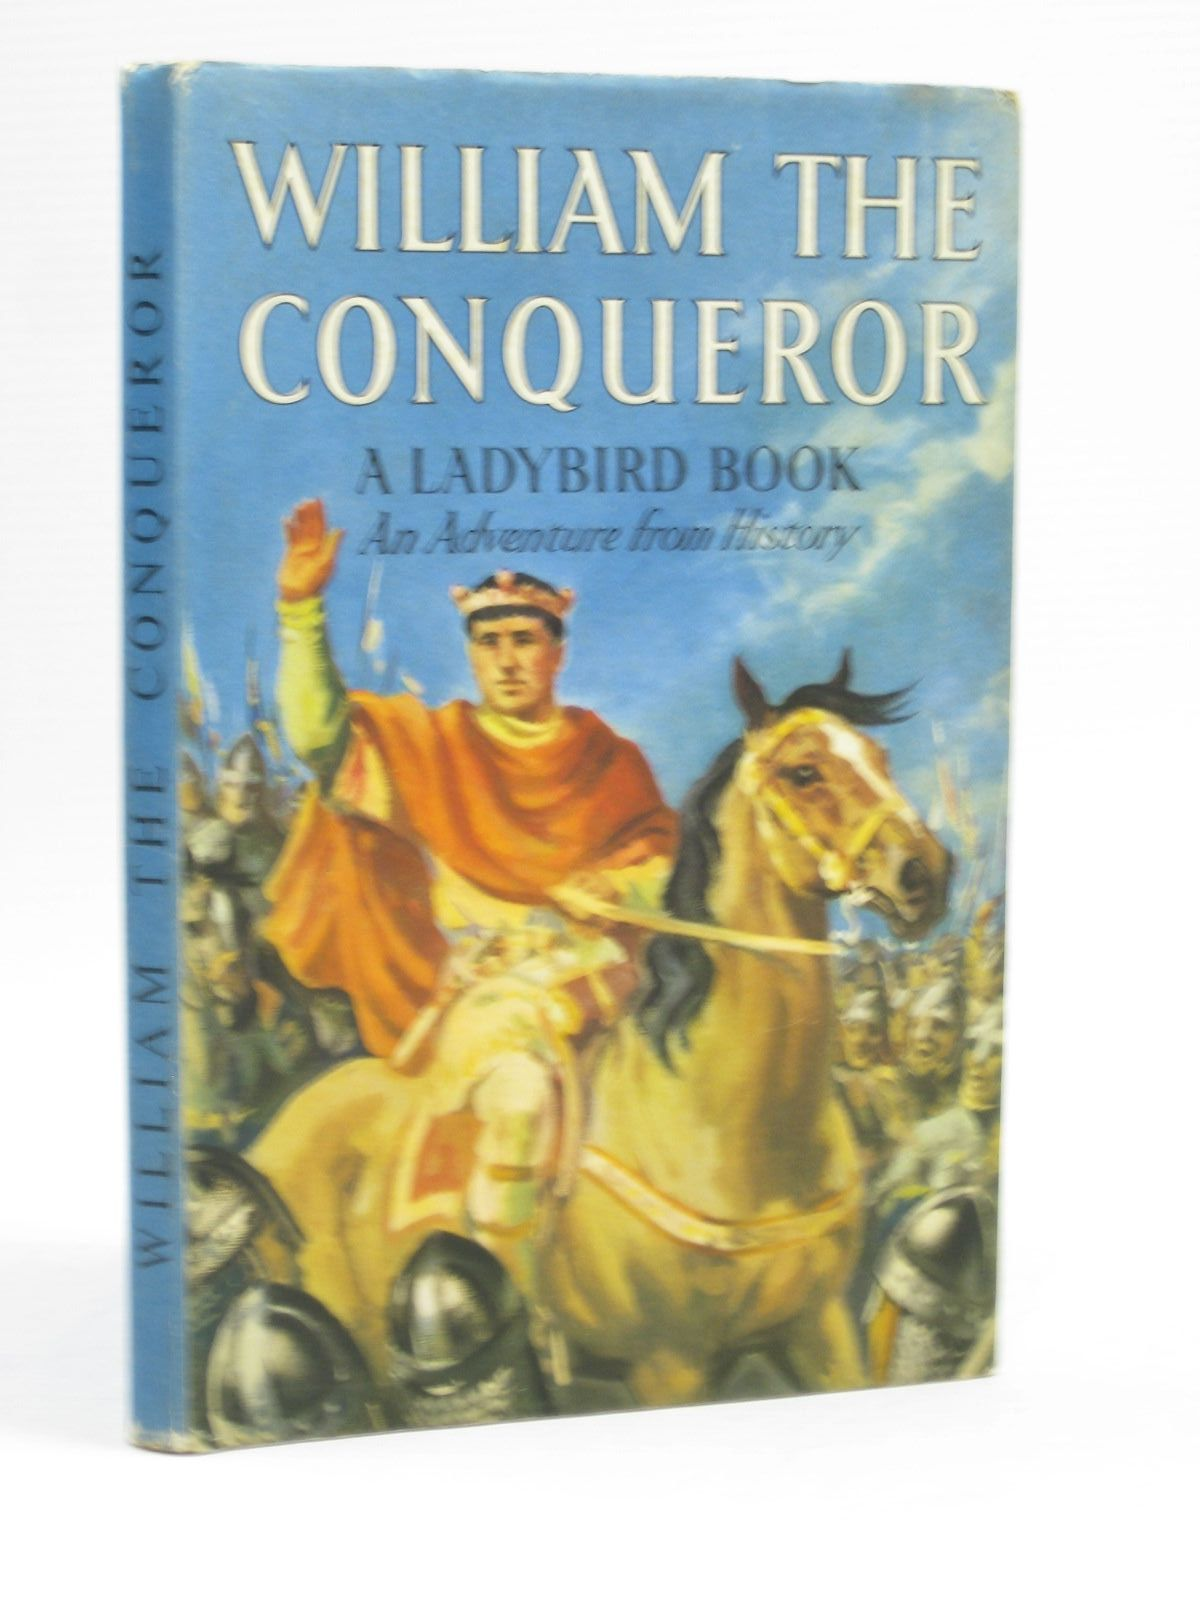 Photo of WILLIAM THE CONQUEROR written by Peach, L. Du Garde illustrated by Kenney, John published by Wills & Hepworth Ltd. (STOCK CODE: 1403819)  for sale by Stella & Rose's Books